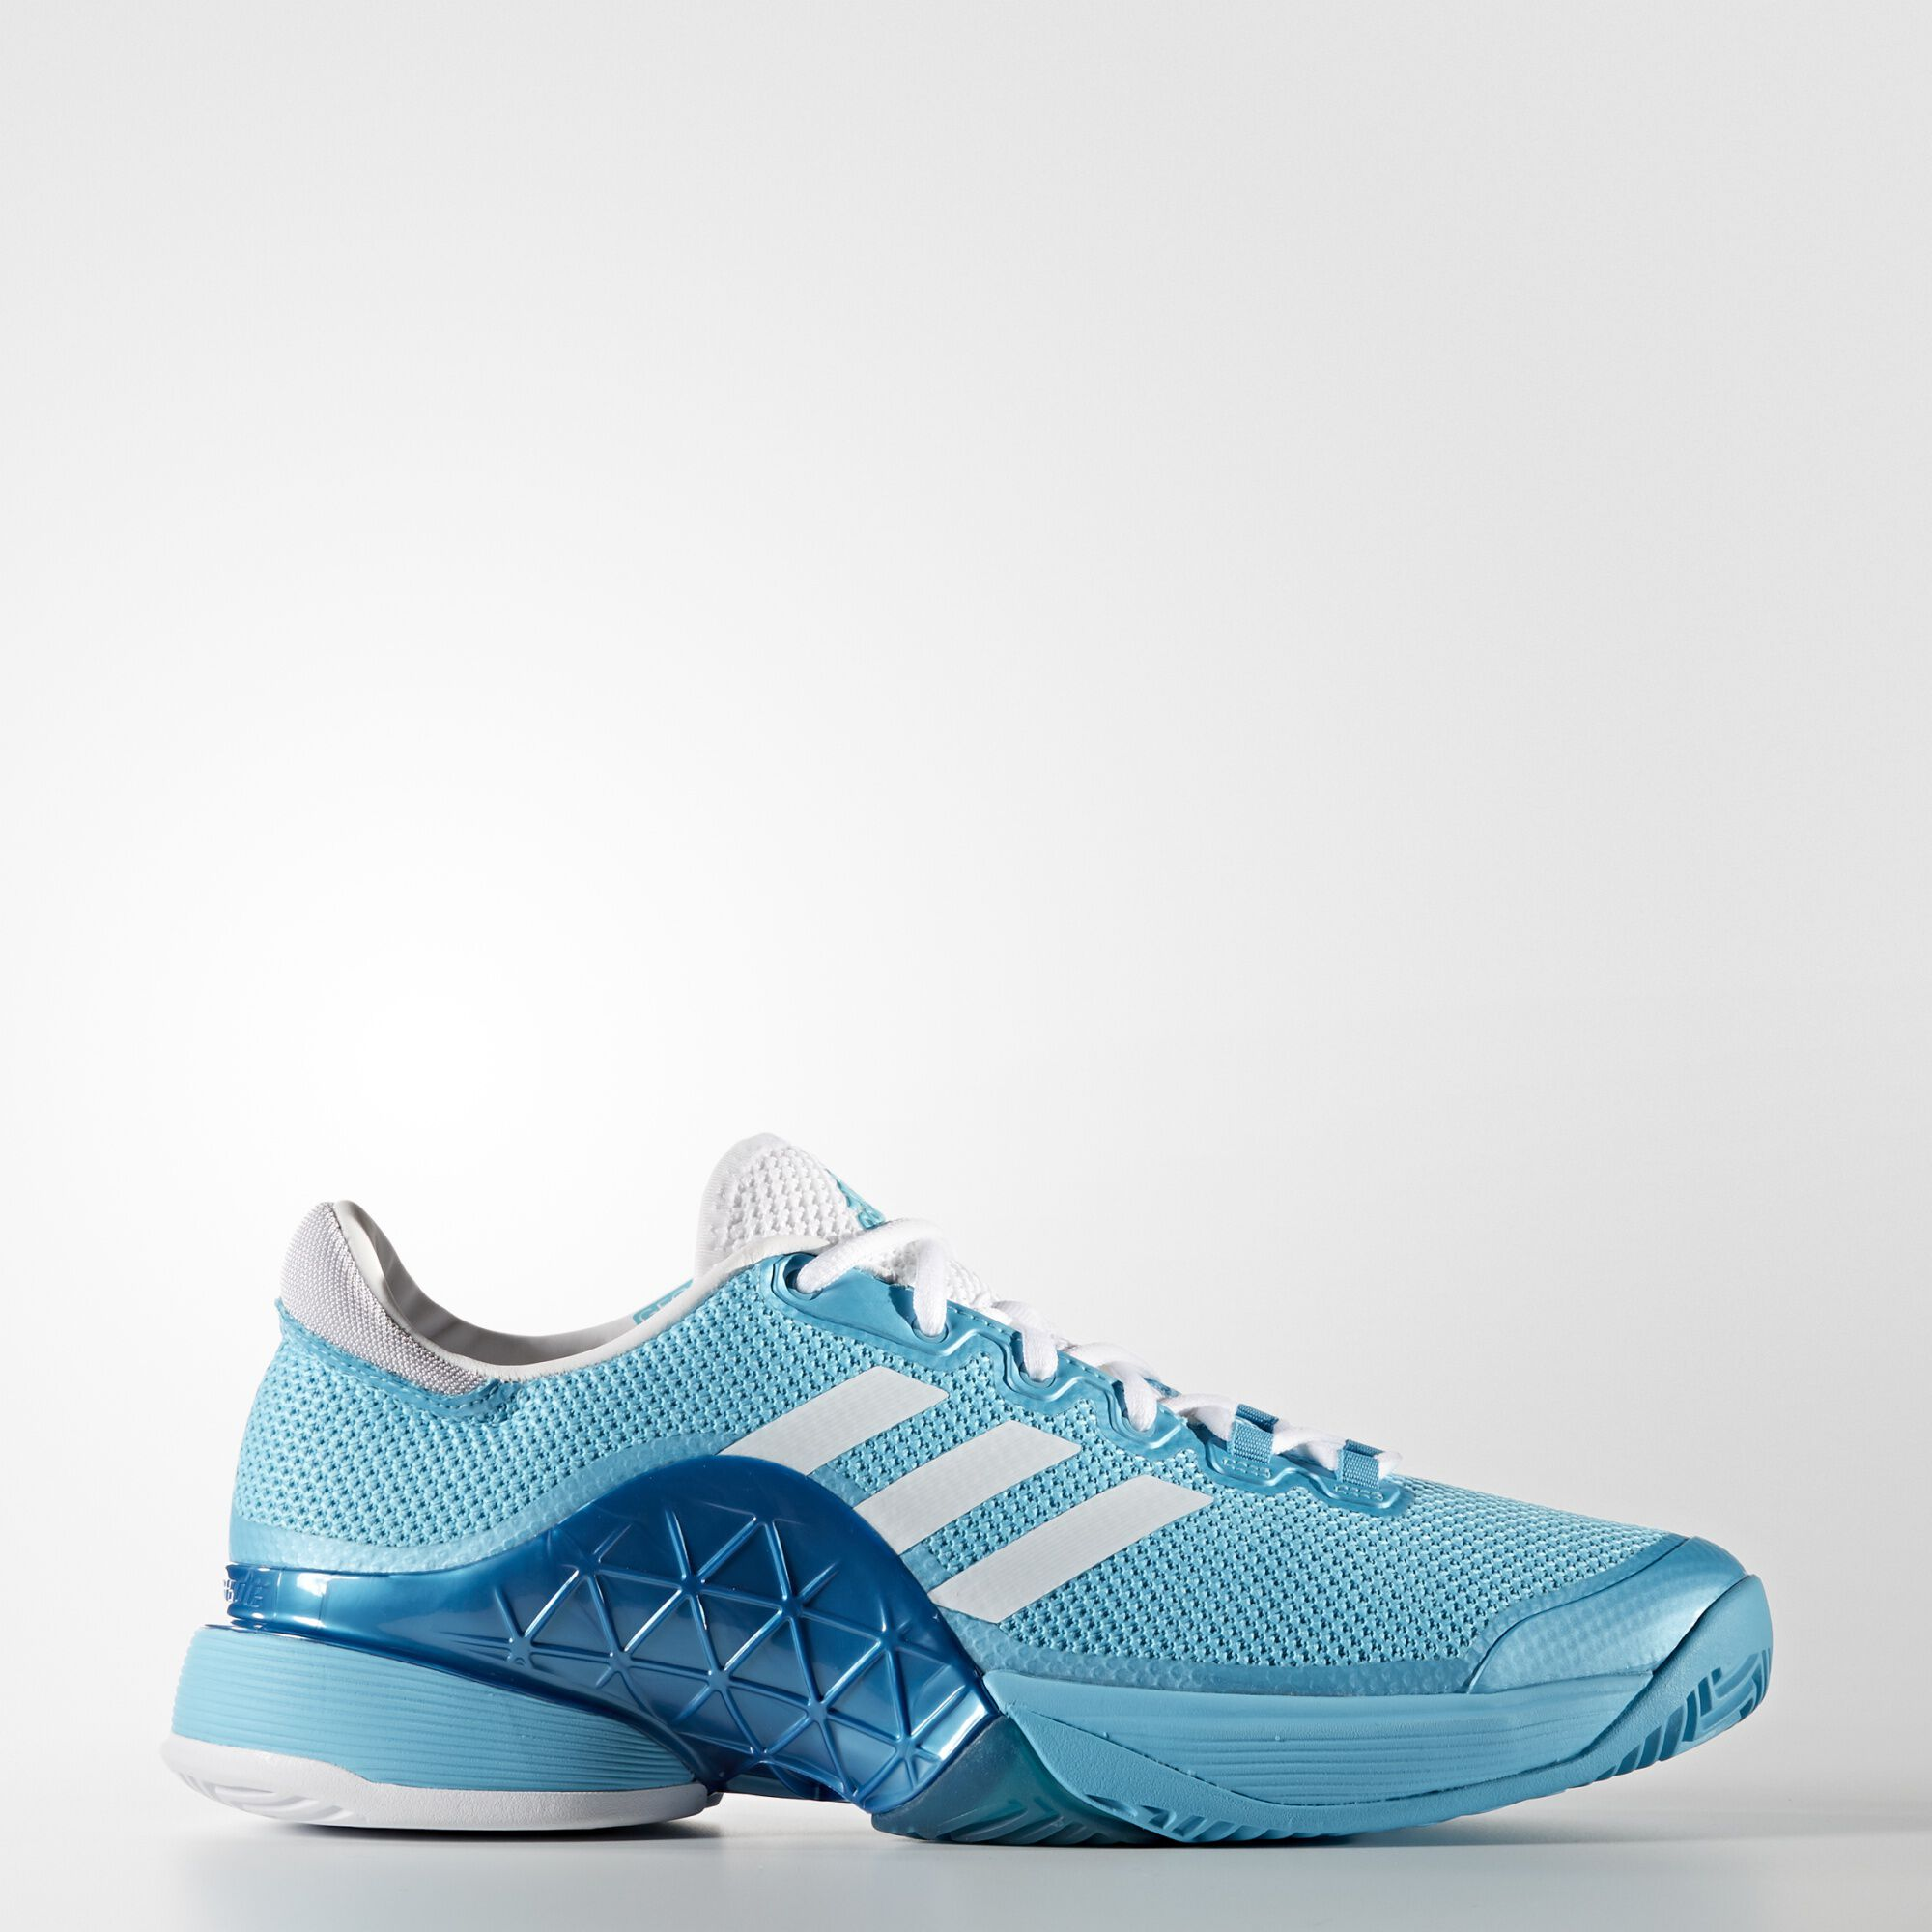 Adidas Shoes 2017 Blue